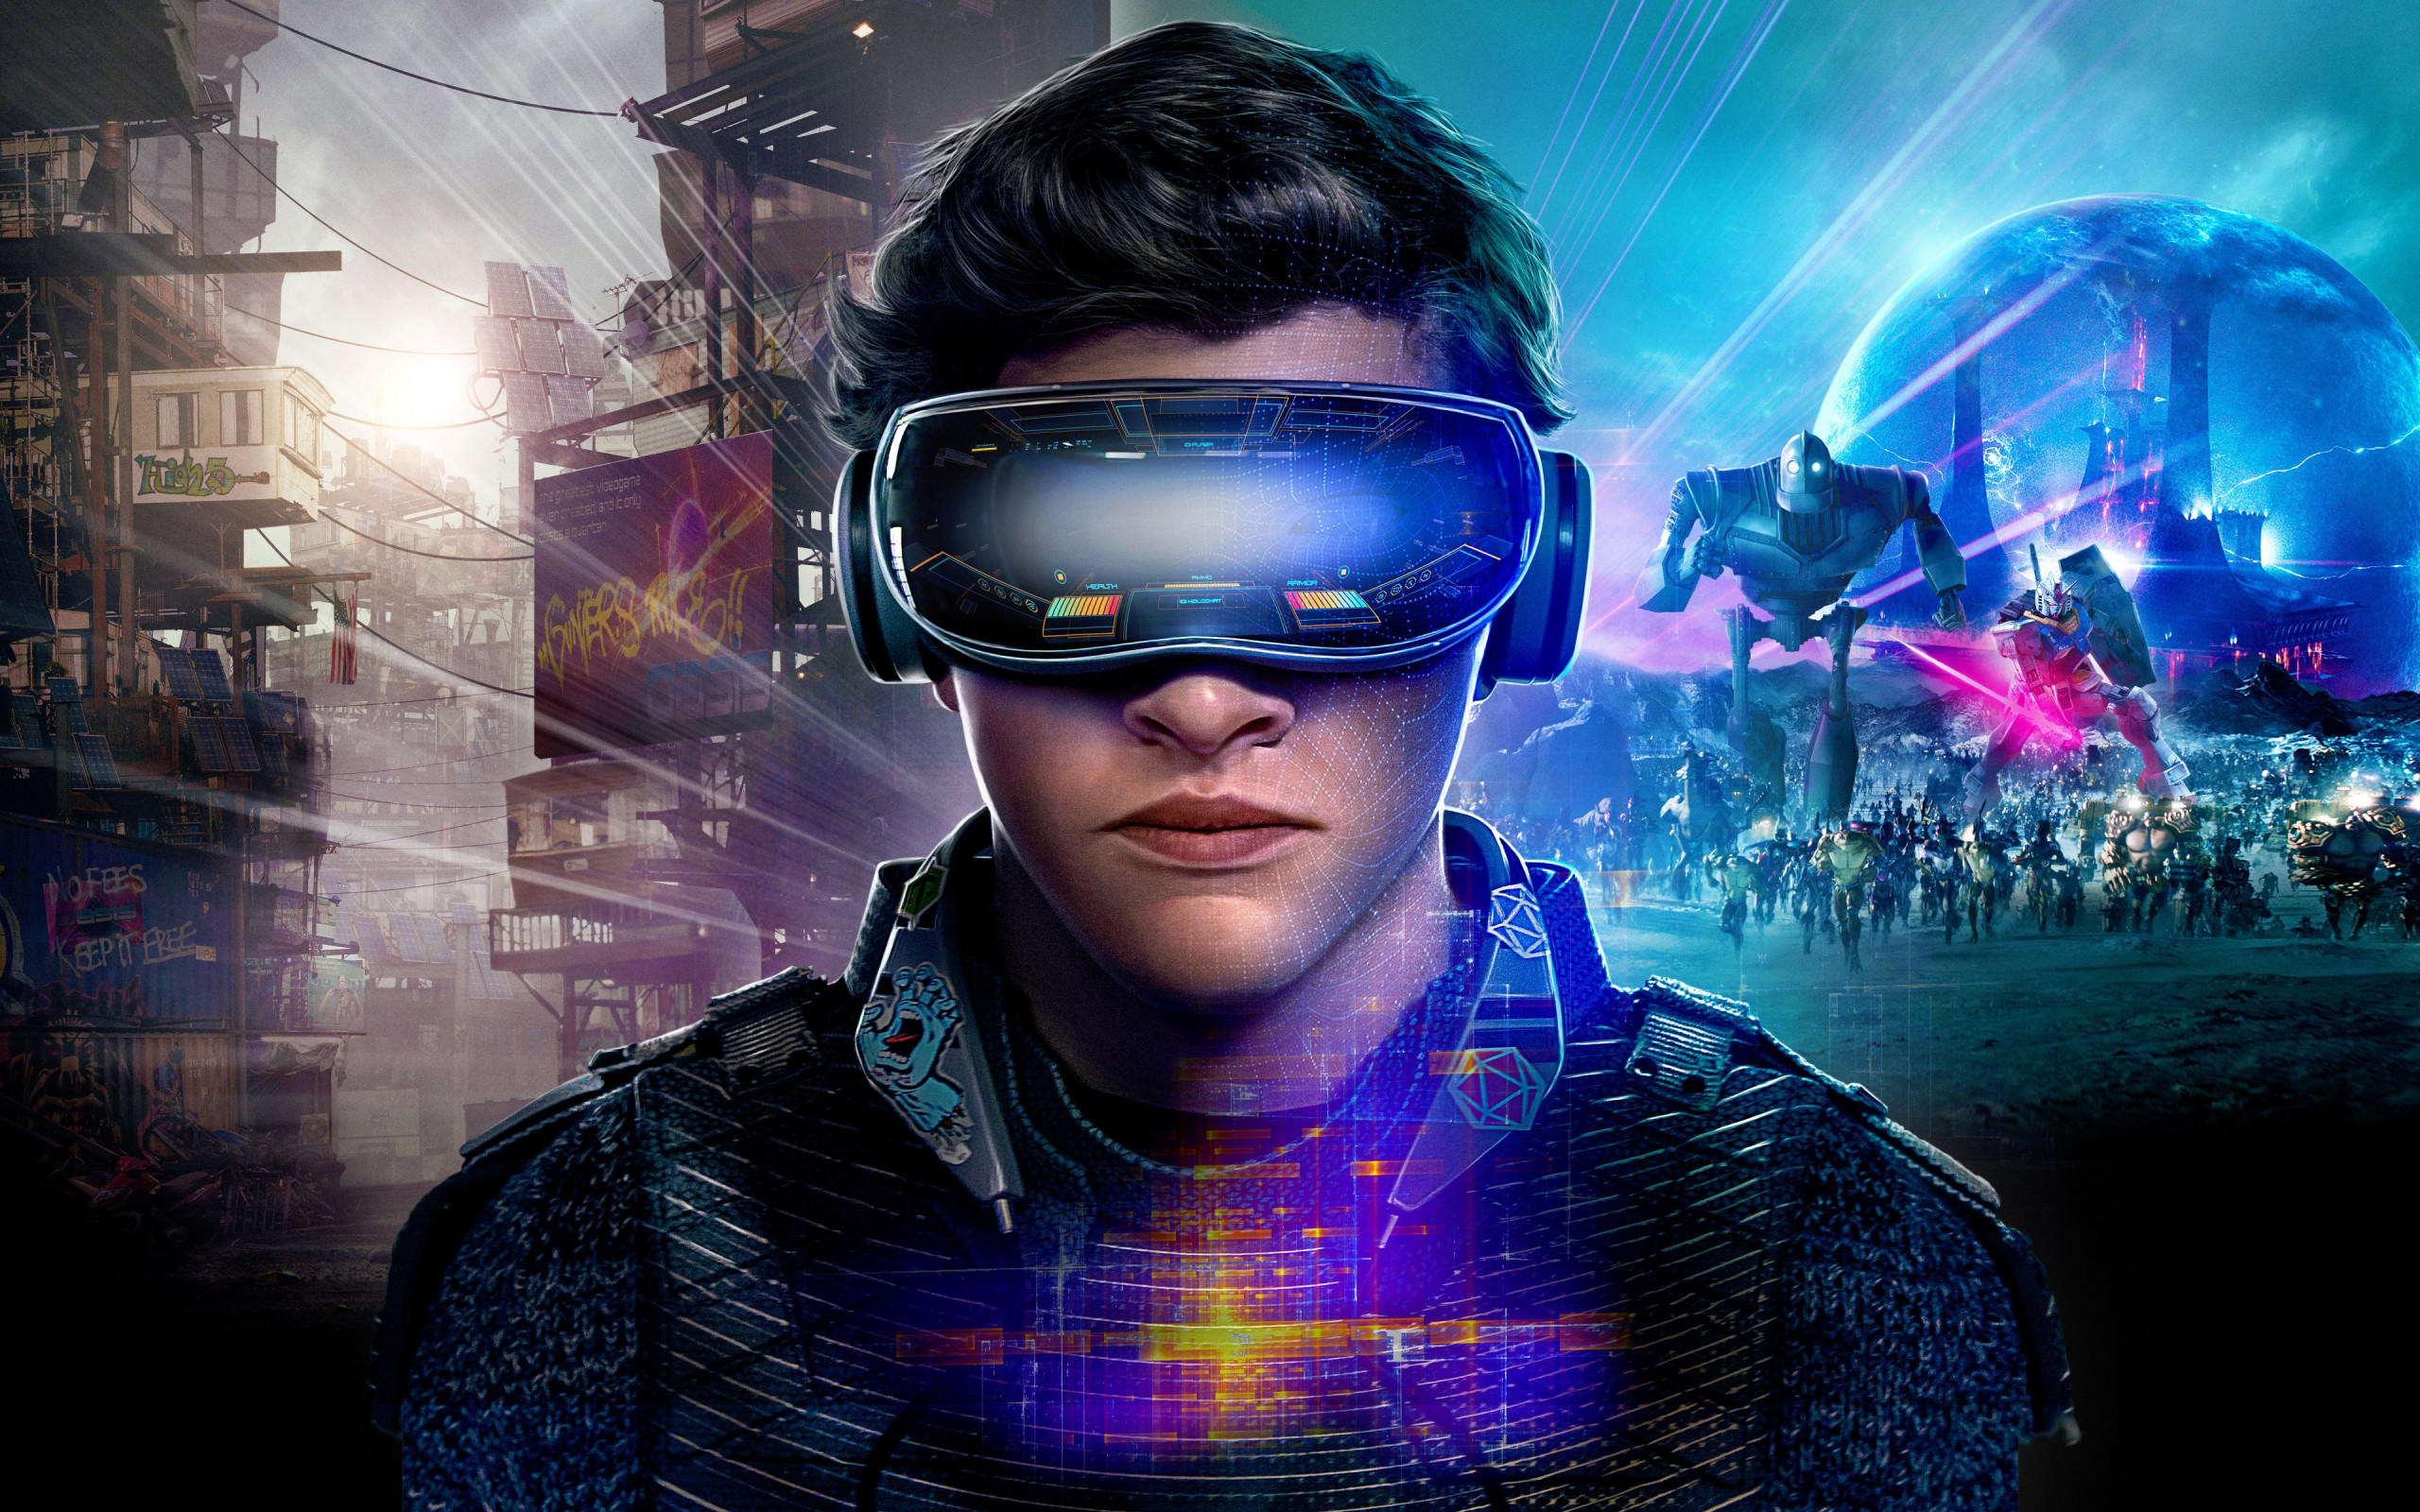 Ready Player One wallpaper 2560x1600